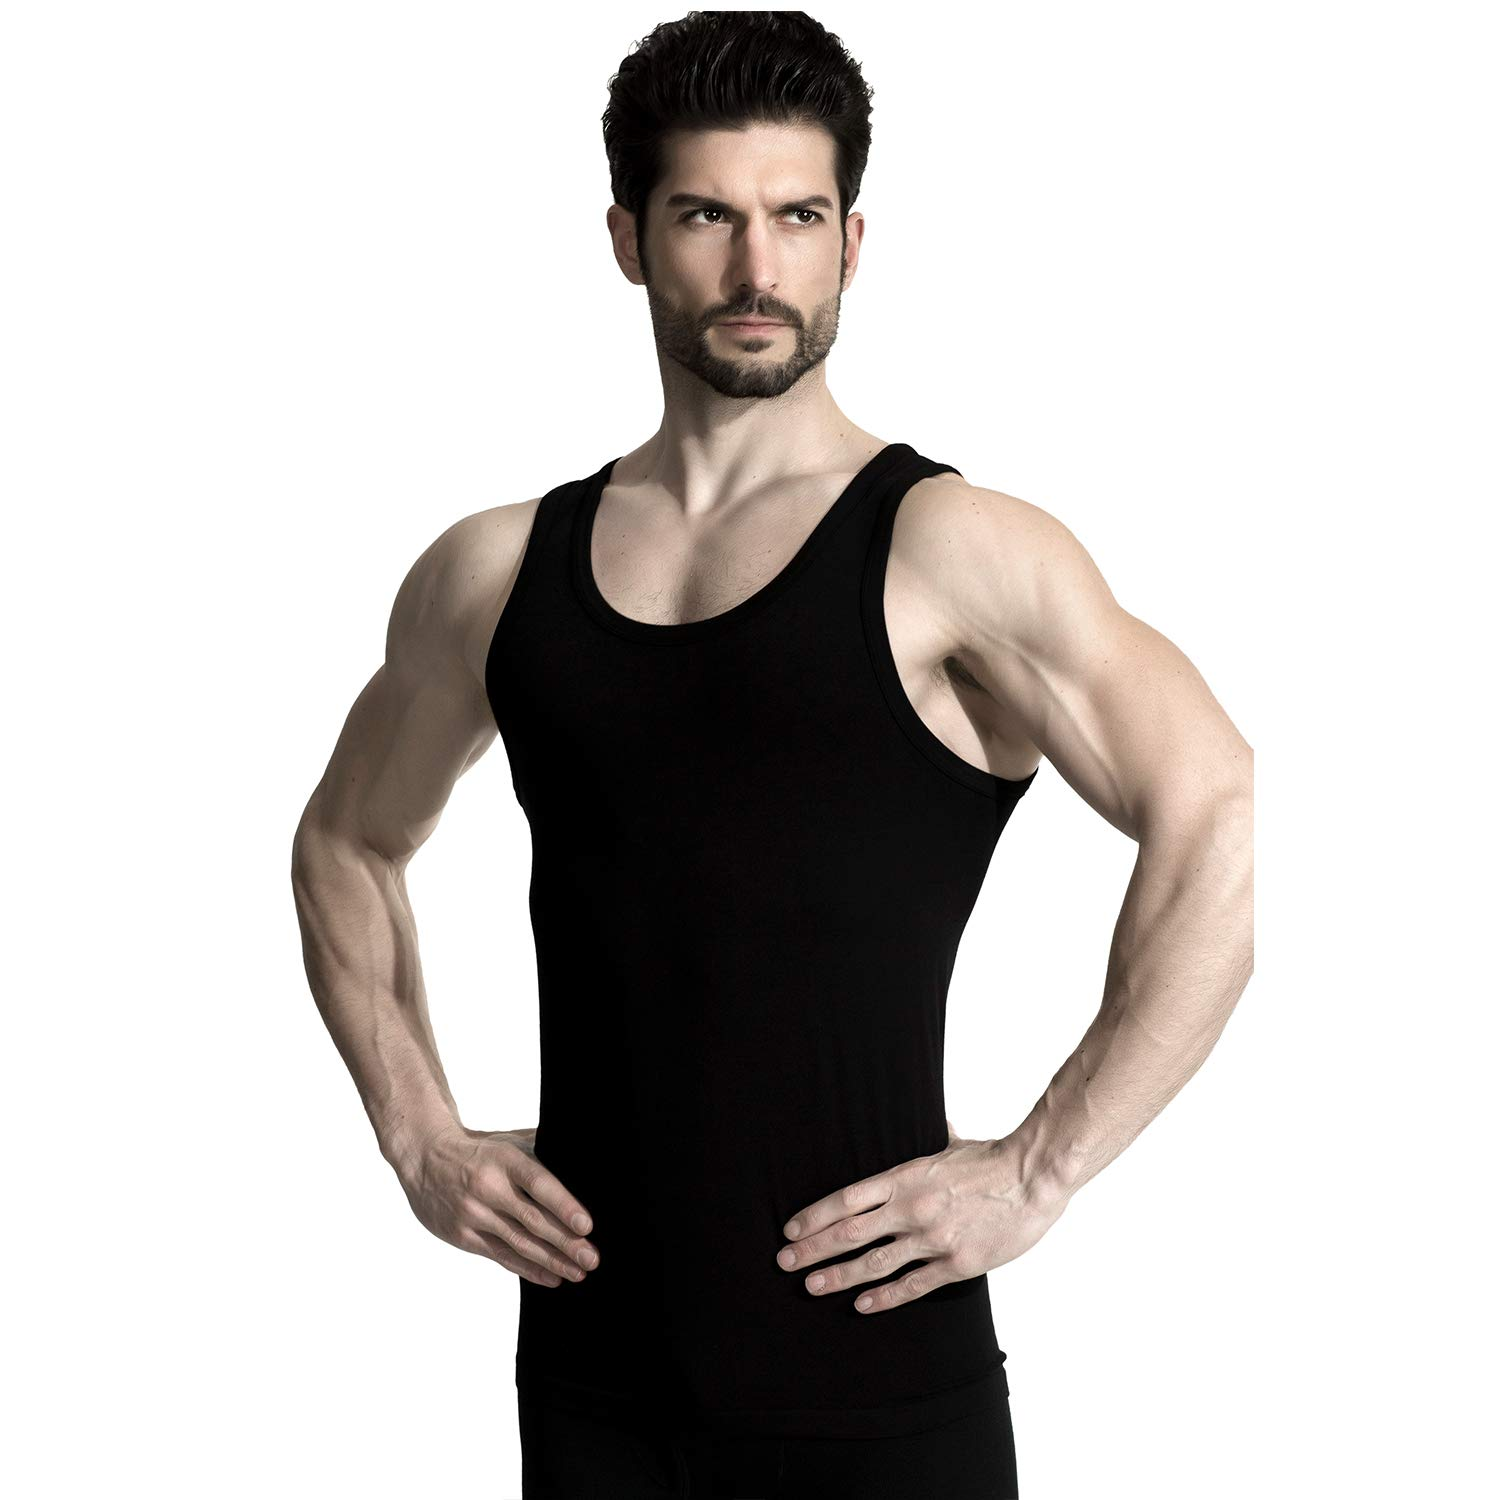 aac05dfae +MD Bamboo Rayon Undershirts for Men Crew Neck Comfy Breathable Soft Tank  Tops Moisture Wicking Undershirts at Amazon Men's Clothing store: